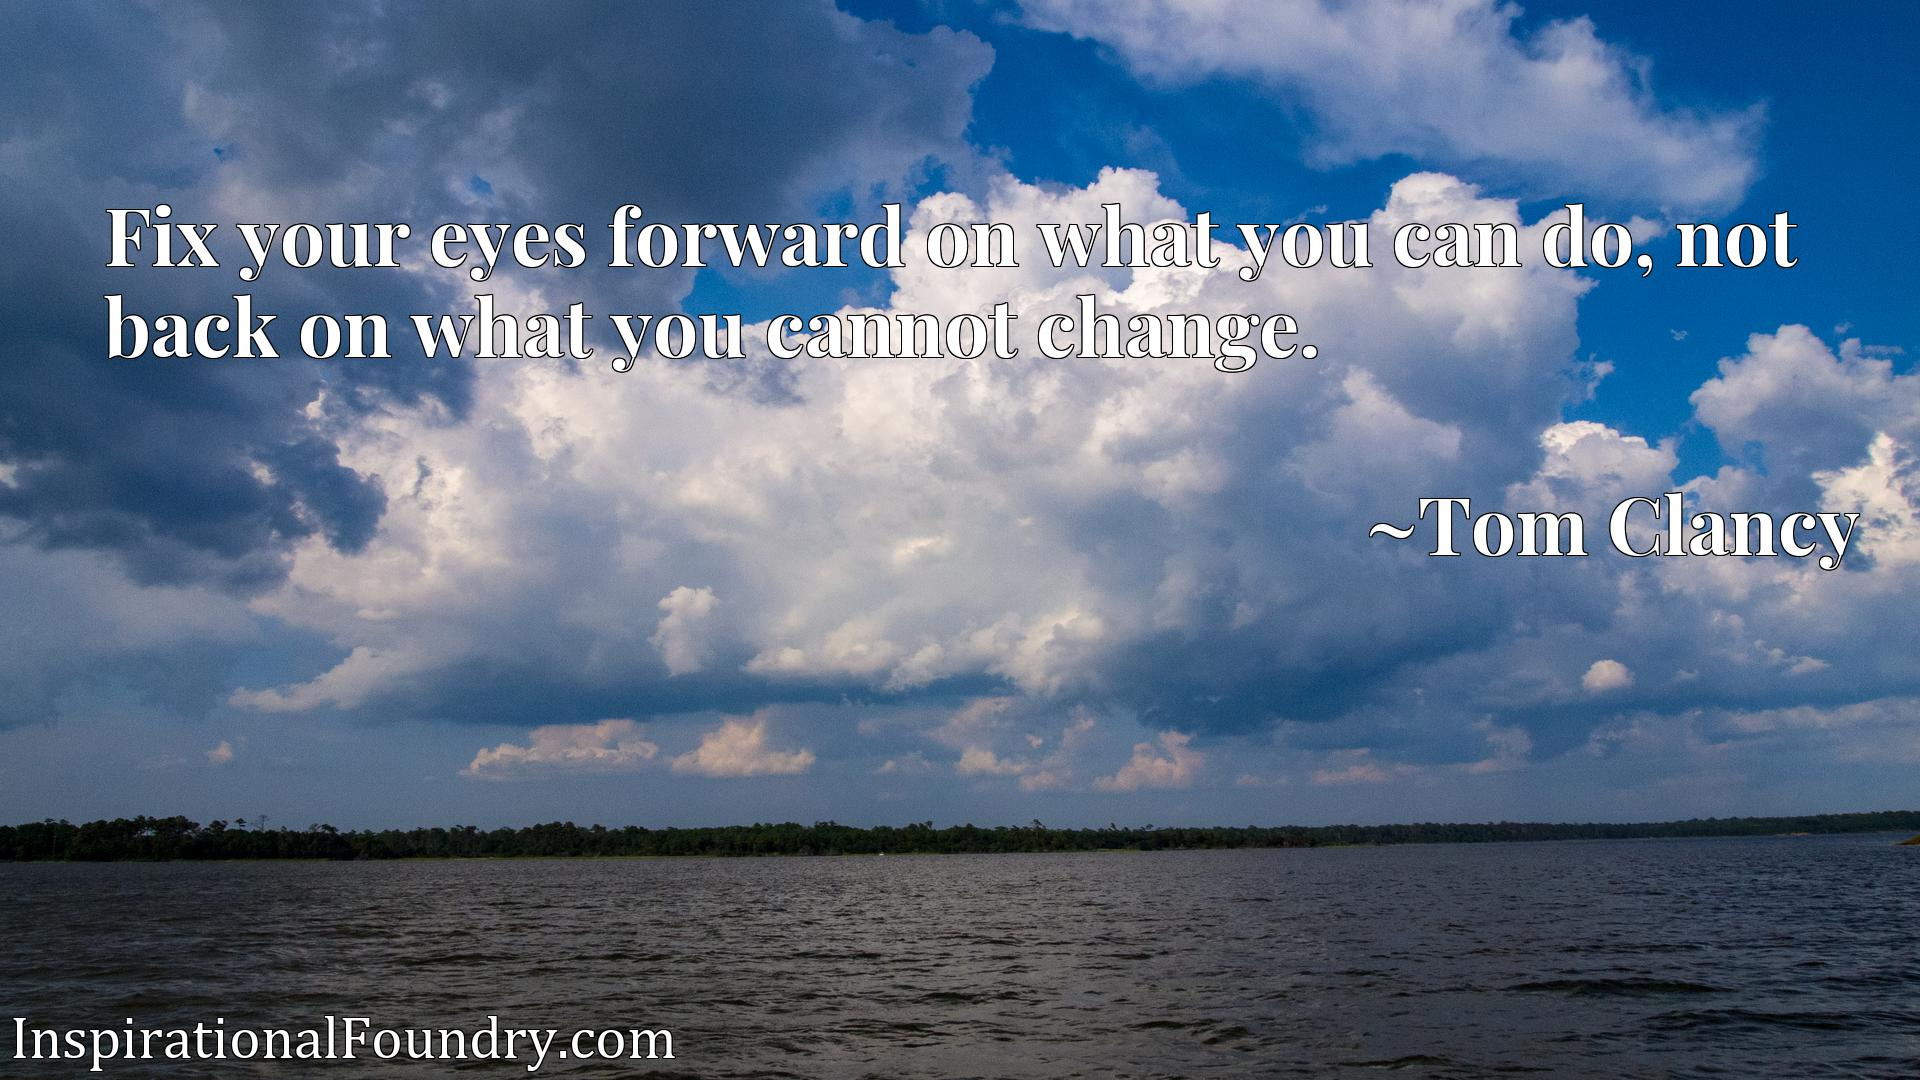 Fix your eyes forward on what you can do, not back on what you cannot change.